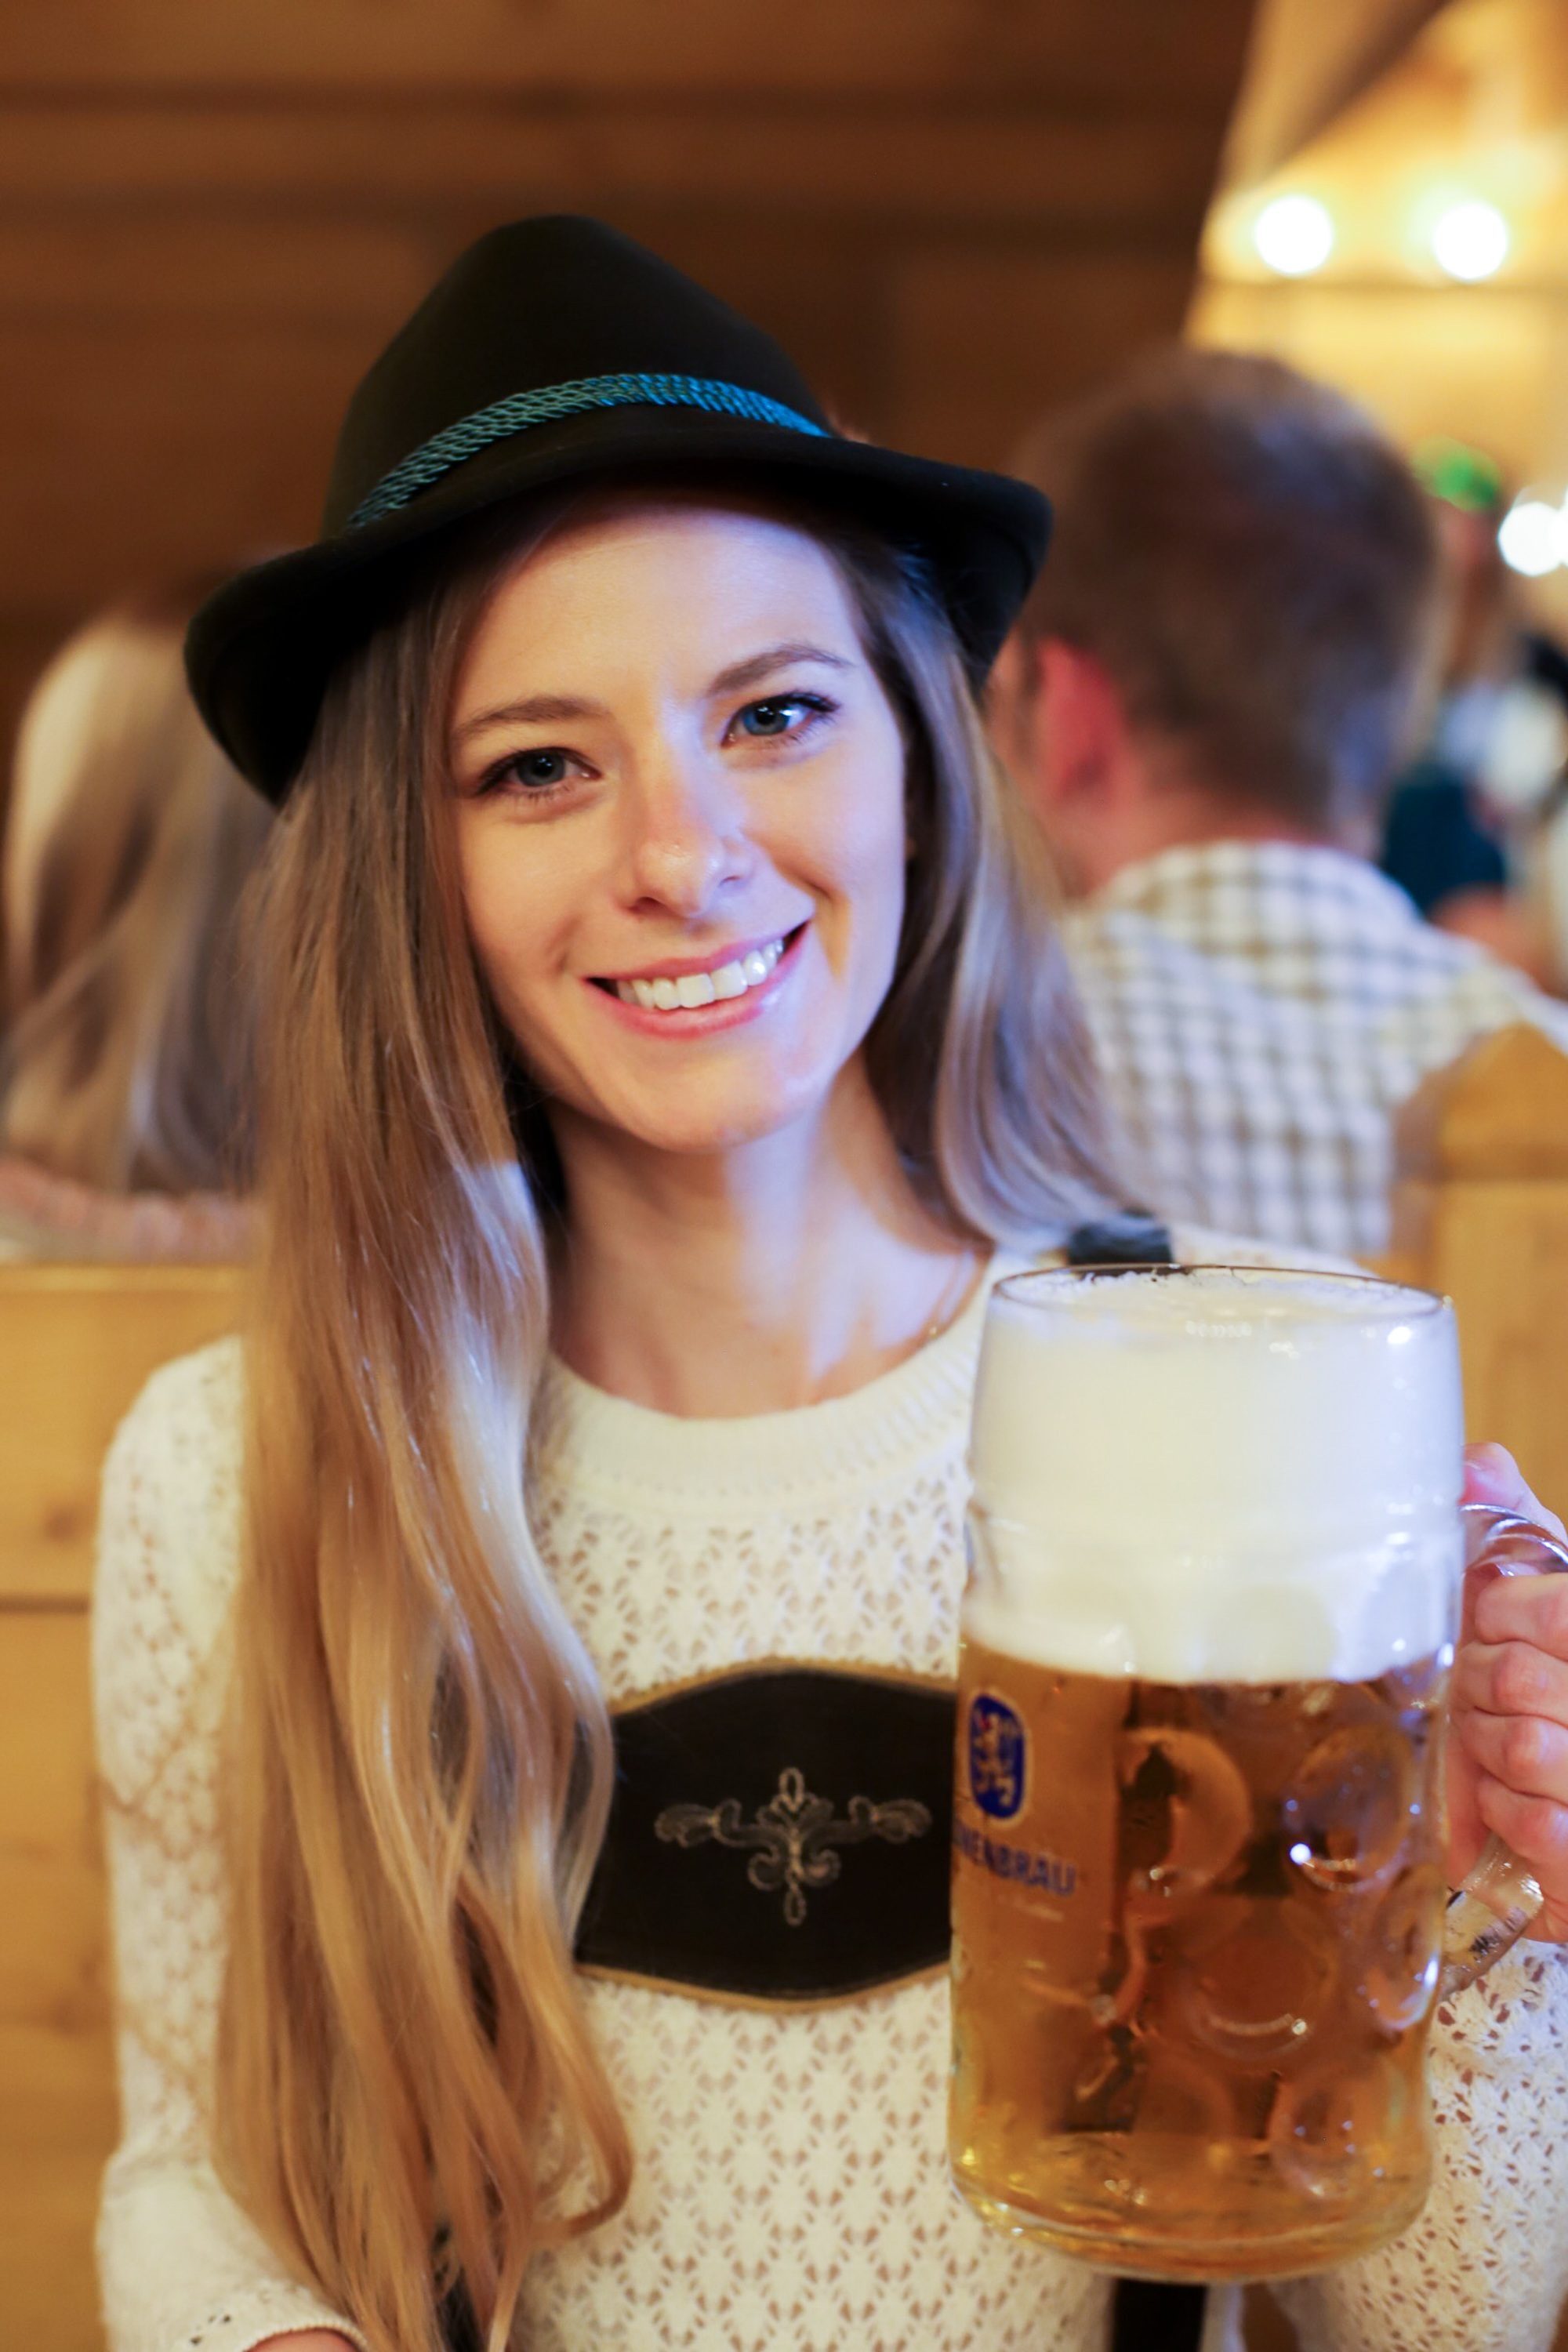 oktoberfest in munich, oktoberfest tips, oktoberfest lederhosen, oktoberfest dirndl, oktoberfest beer tents, is oktoberfest free, does oktoberfest cost to get into, where to buy oktoberfest costumes, oktoberfest location, oktoberfest in germany